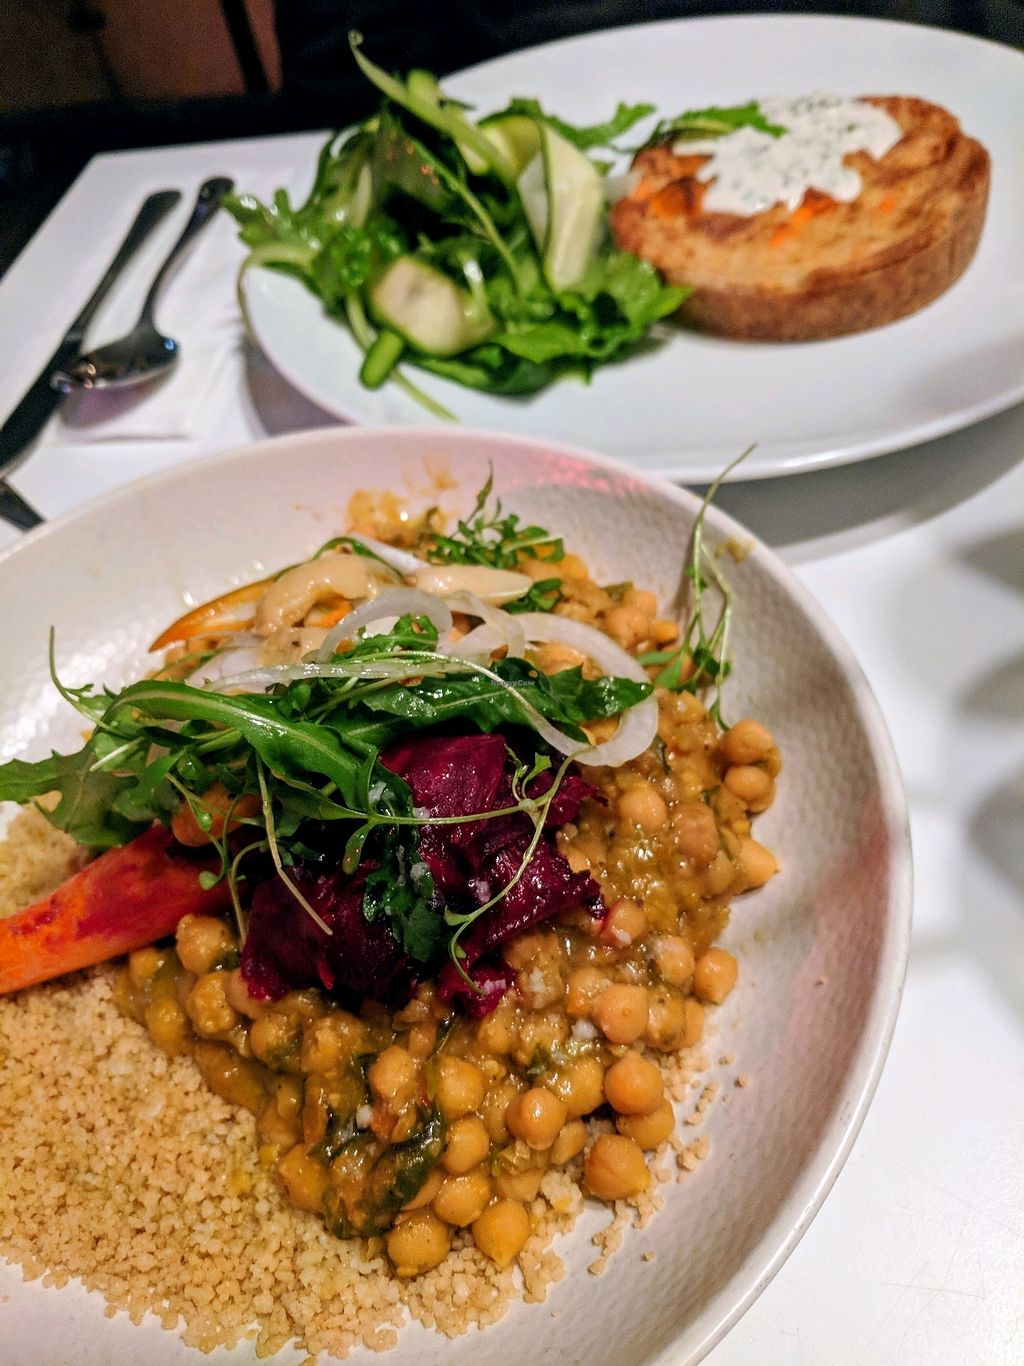 """Photo of Anastasia  by <a href=""""/members/profile/NJ220"""">NJ220</a> <br/>Chickpea and squash stew and the Sweet potato quiche. Both very nice! <br/> February 28, 2018  - <a href='/contact/abuse/image/47650/364731'>Report</a>"""